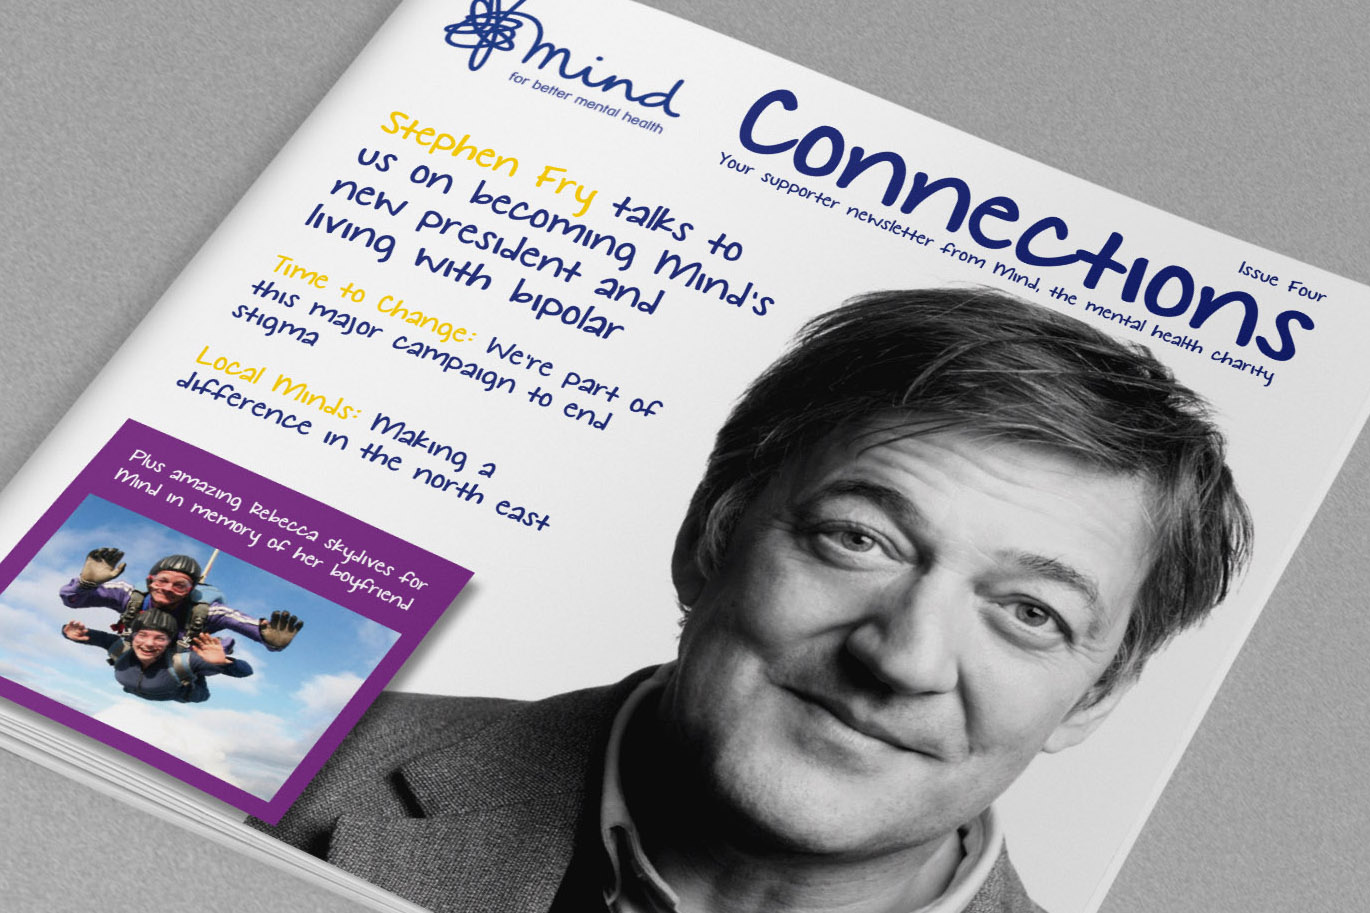 Mind Charity Newsletter cover design